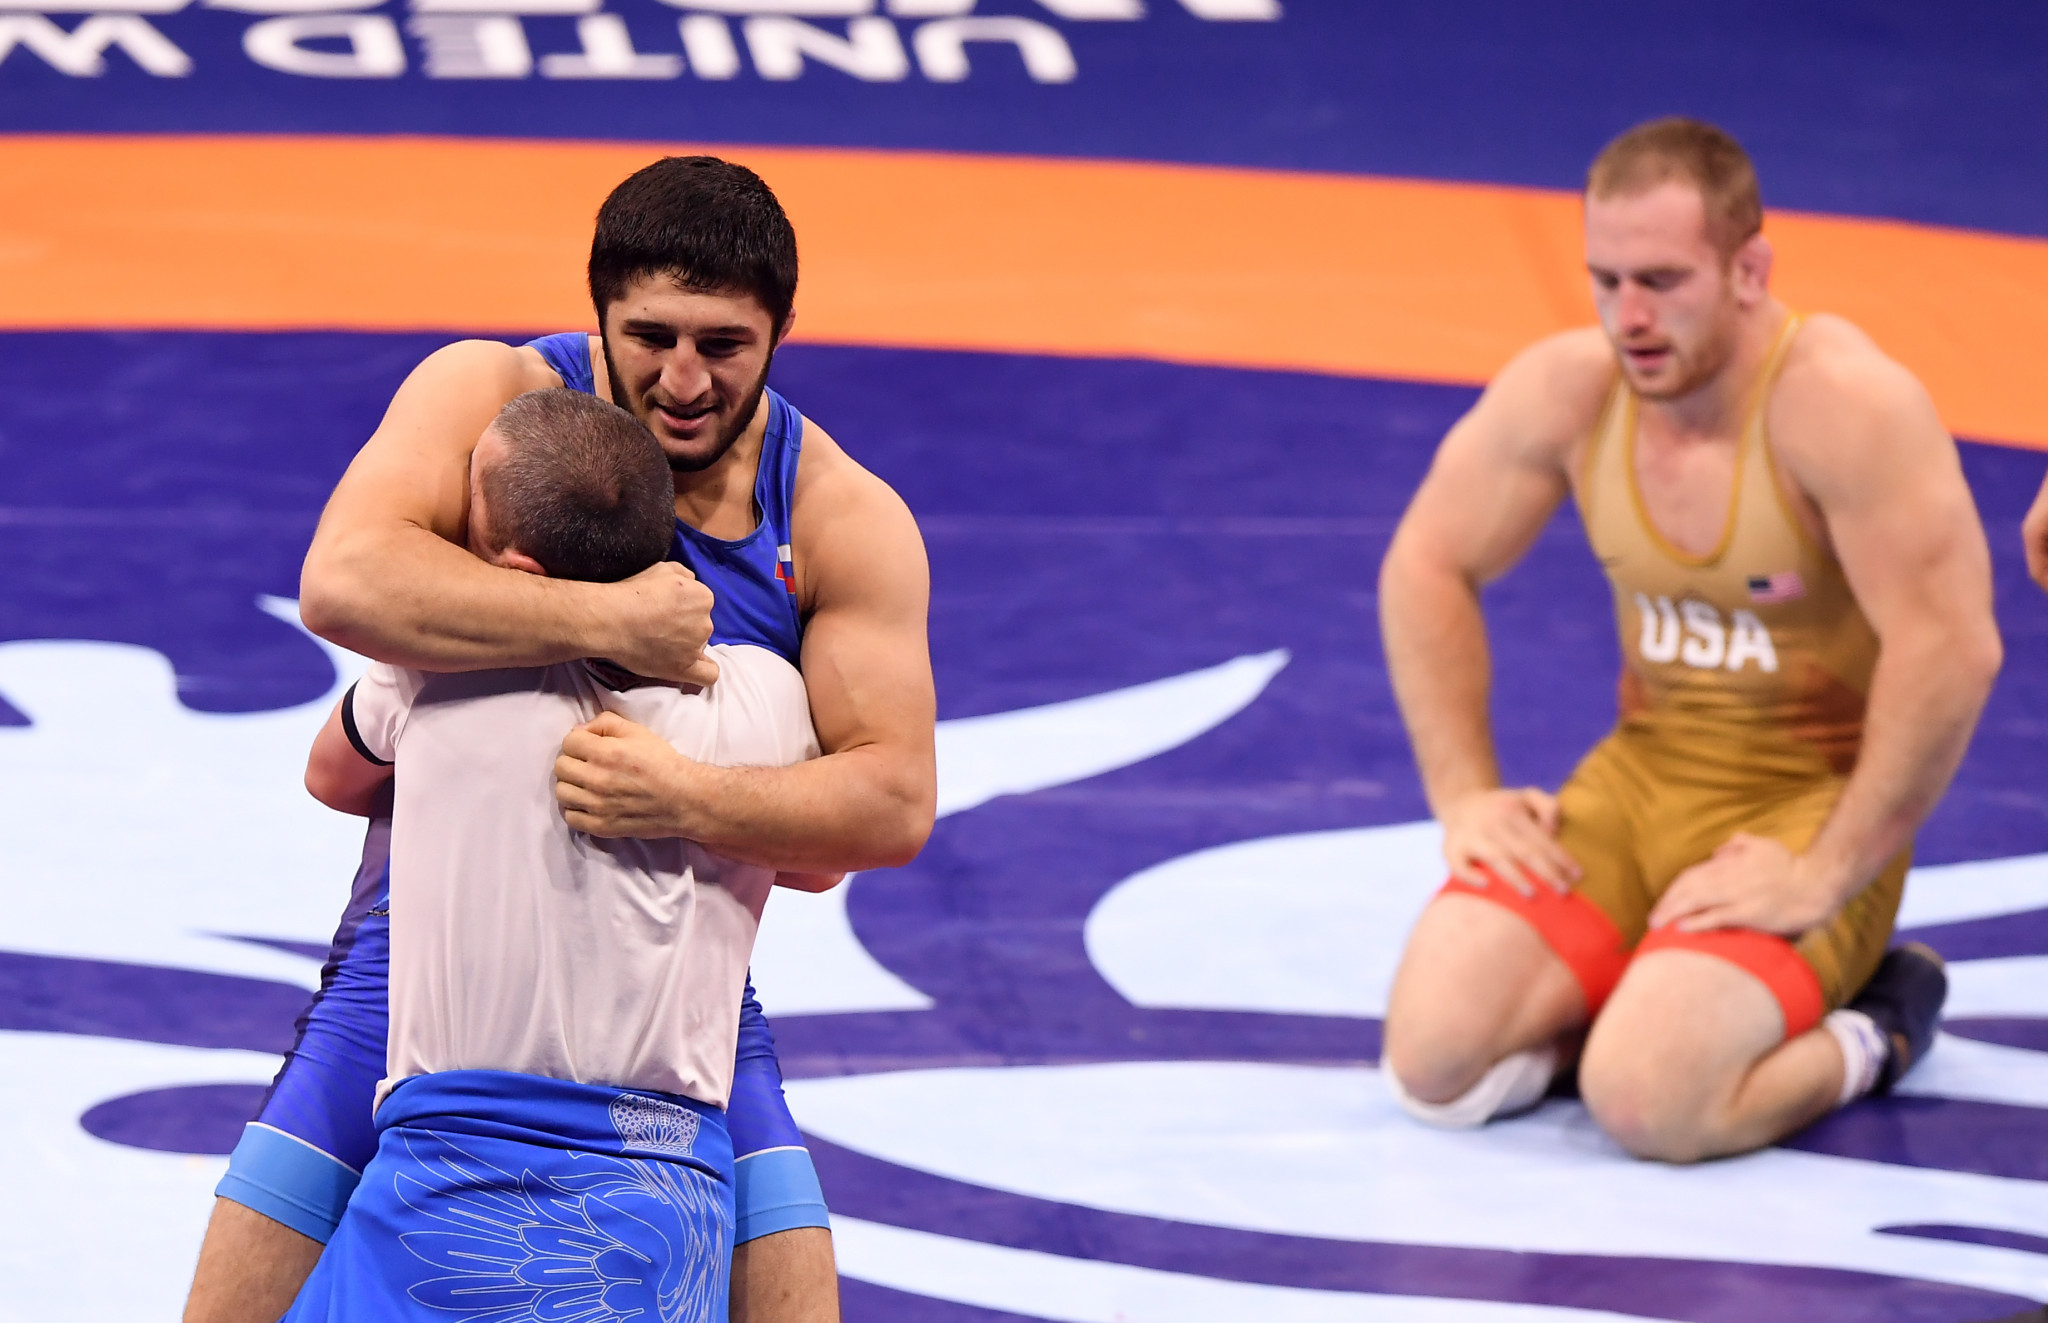 """Abdulrashid Sadulaev won the 97kg freestyle final at the World Wrestling Championships against Kyle Snyder, in a tie dubbed """"the rematch of the century"""" ©Getty Images"""